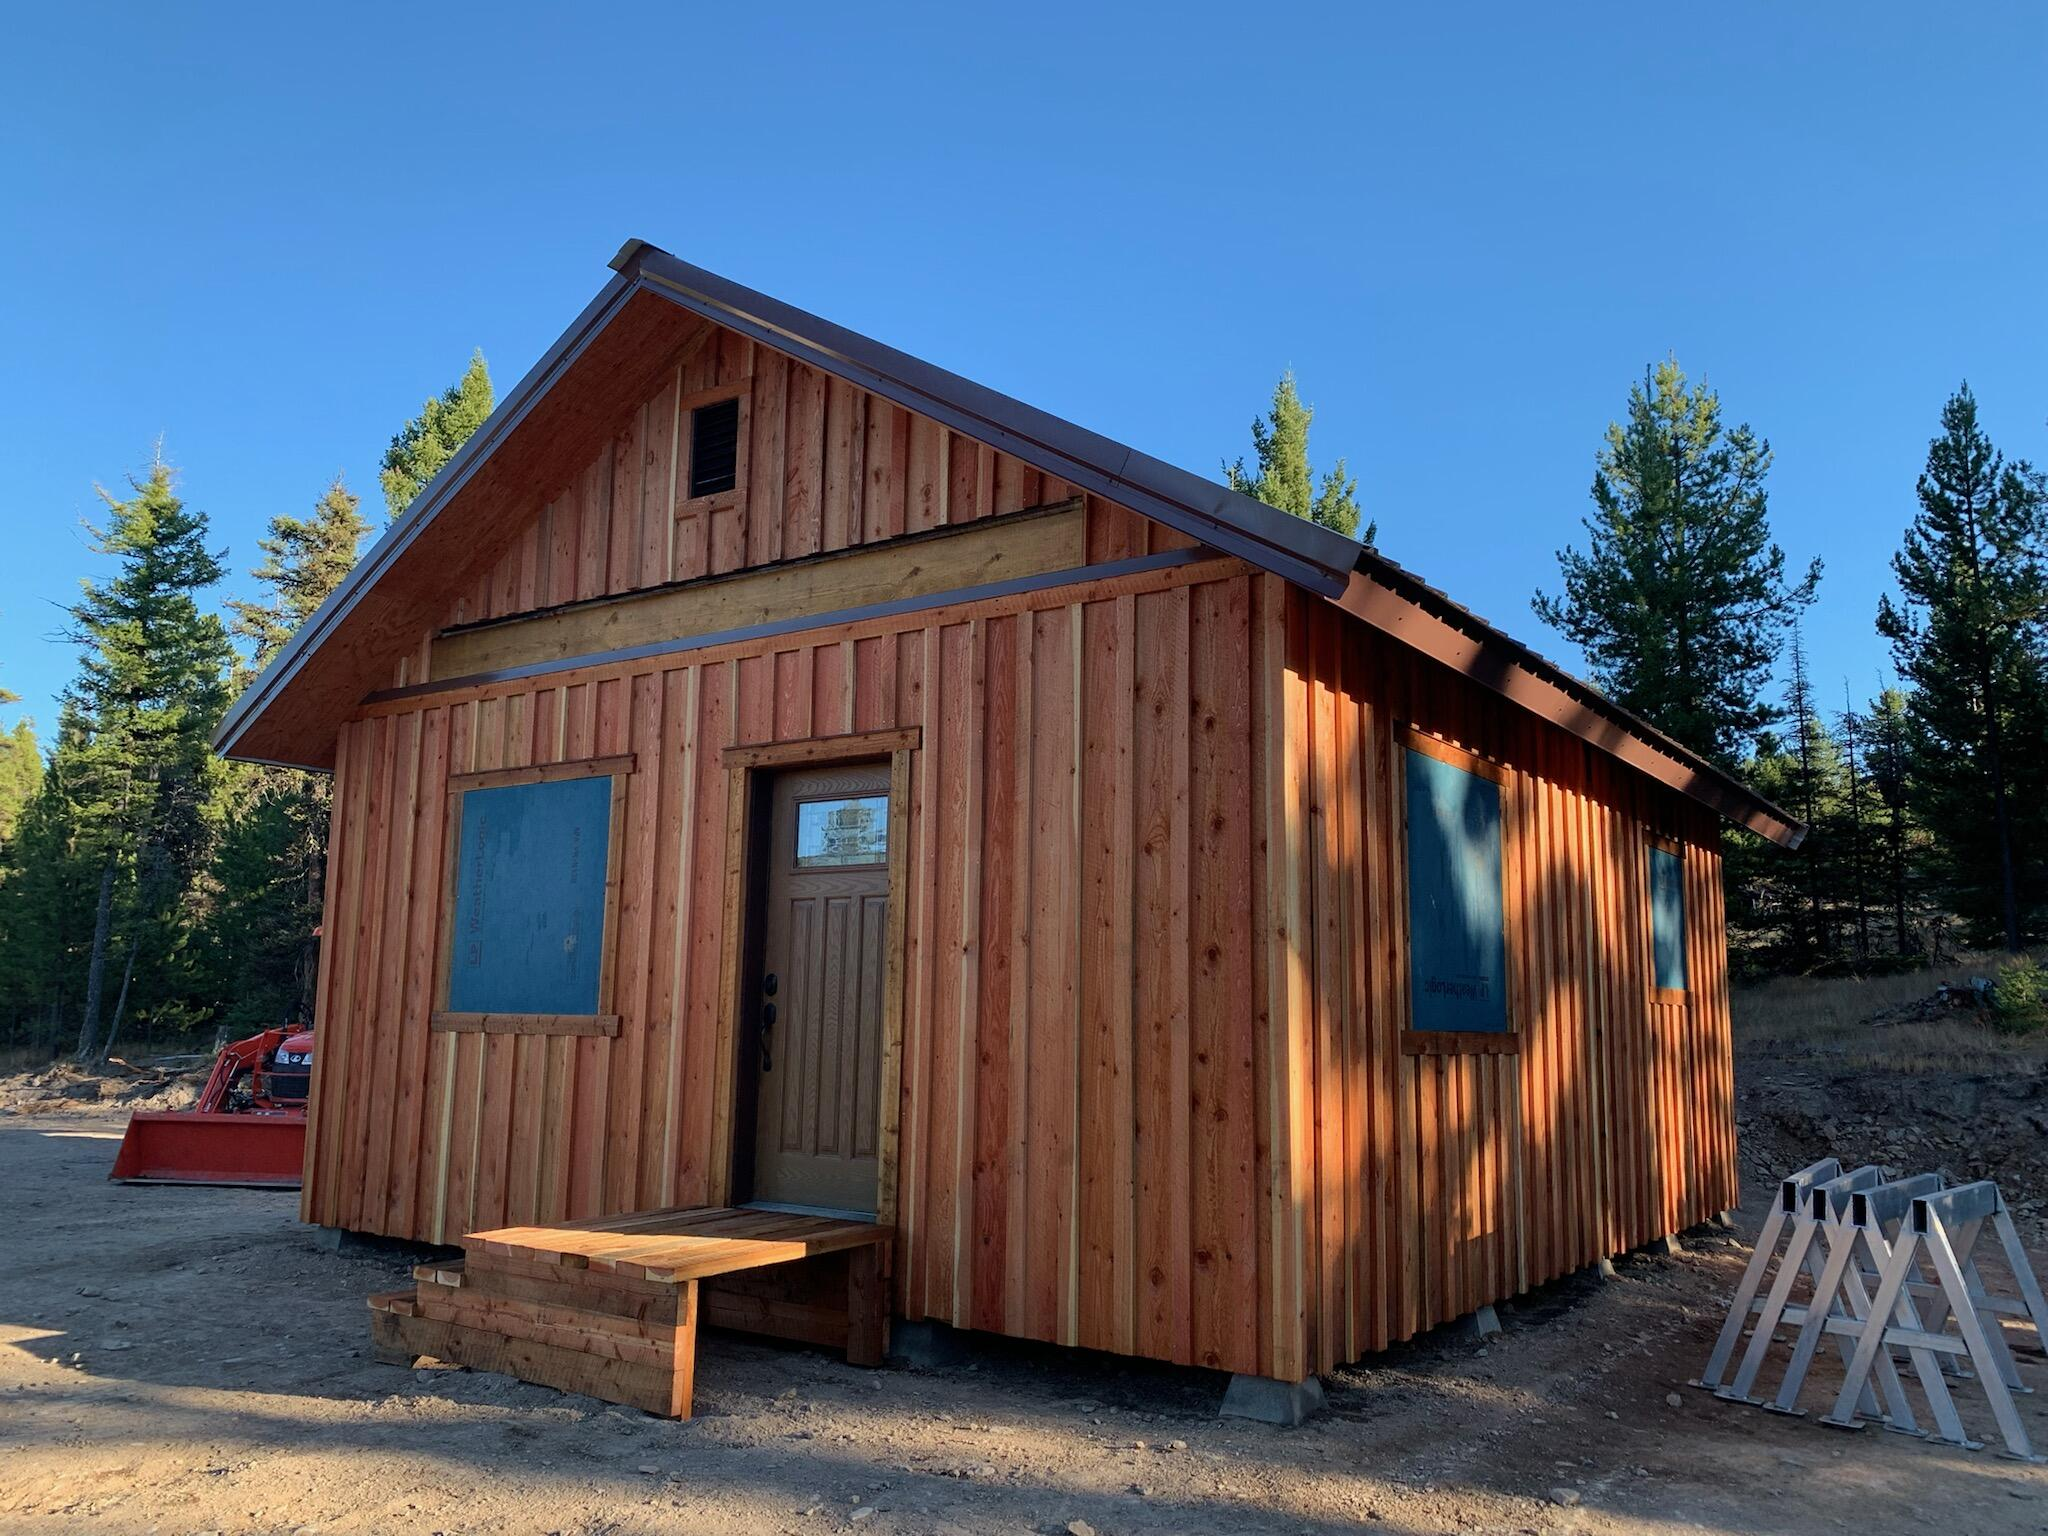 NEW 2021 off grid FRAME CABIN SHELL WITH INTERIOR FRAMING FOR KITCHEN/LIVING ROOM, BEDROOM, BATHROOM,  build out of full dimension lumber, new windows and doors, metal roof , newly treated board and batten  exterior.  Aluminum truck body with roll up locking door for atv storage, functional outhouse.Large spring in North east corner of the 20, spring planned for cabin use in the NW corner of the property,  Chimney creek runs through the West end of the property.  Another complete relic cabin on the East end of the property and two vintage bunkhouse / storage building in that area.  New cabin is in the area of the NORTH WEST  1/4 of the property.About 65% of the 20 acres is gentle slope/flat areas   timbered with new lodgepole, Alpine fir, mature doug fir in creek bottom.